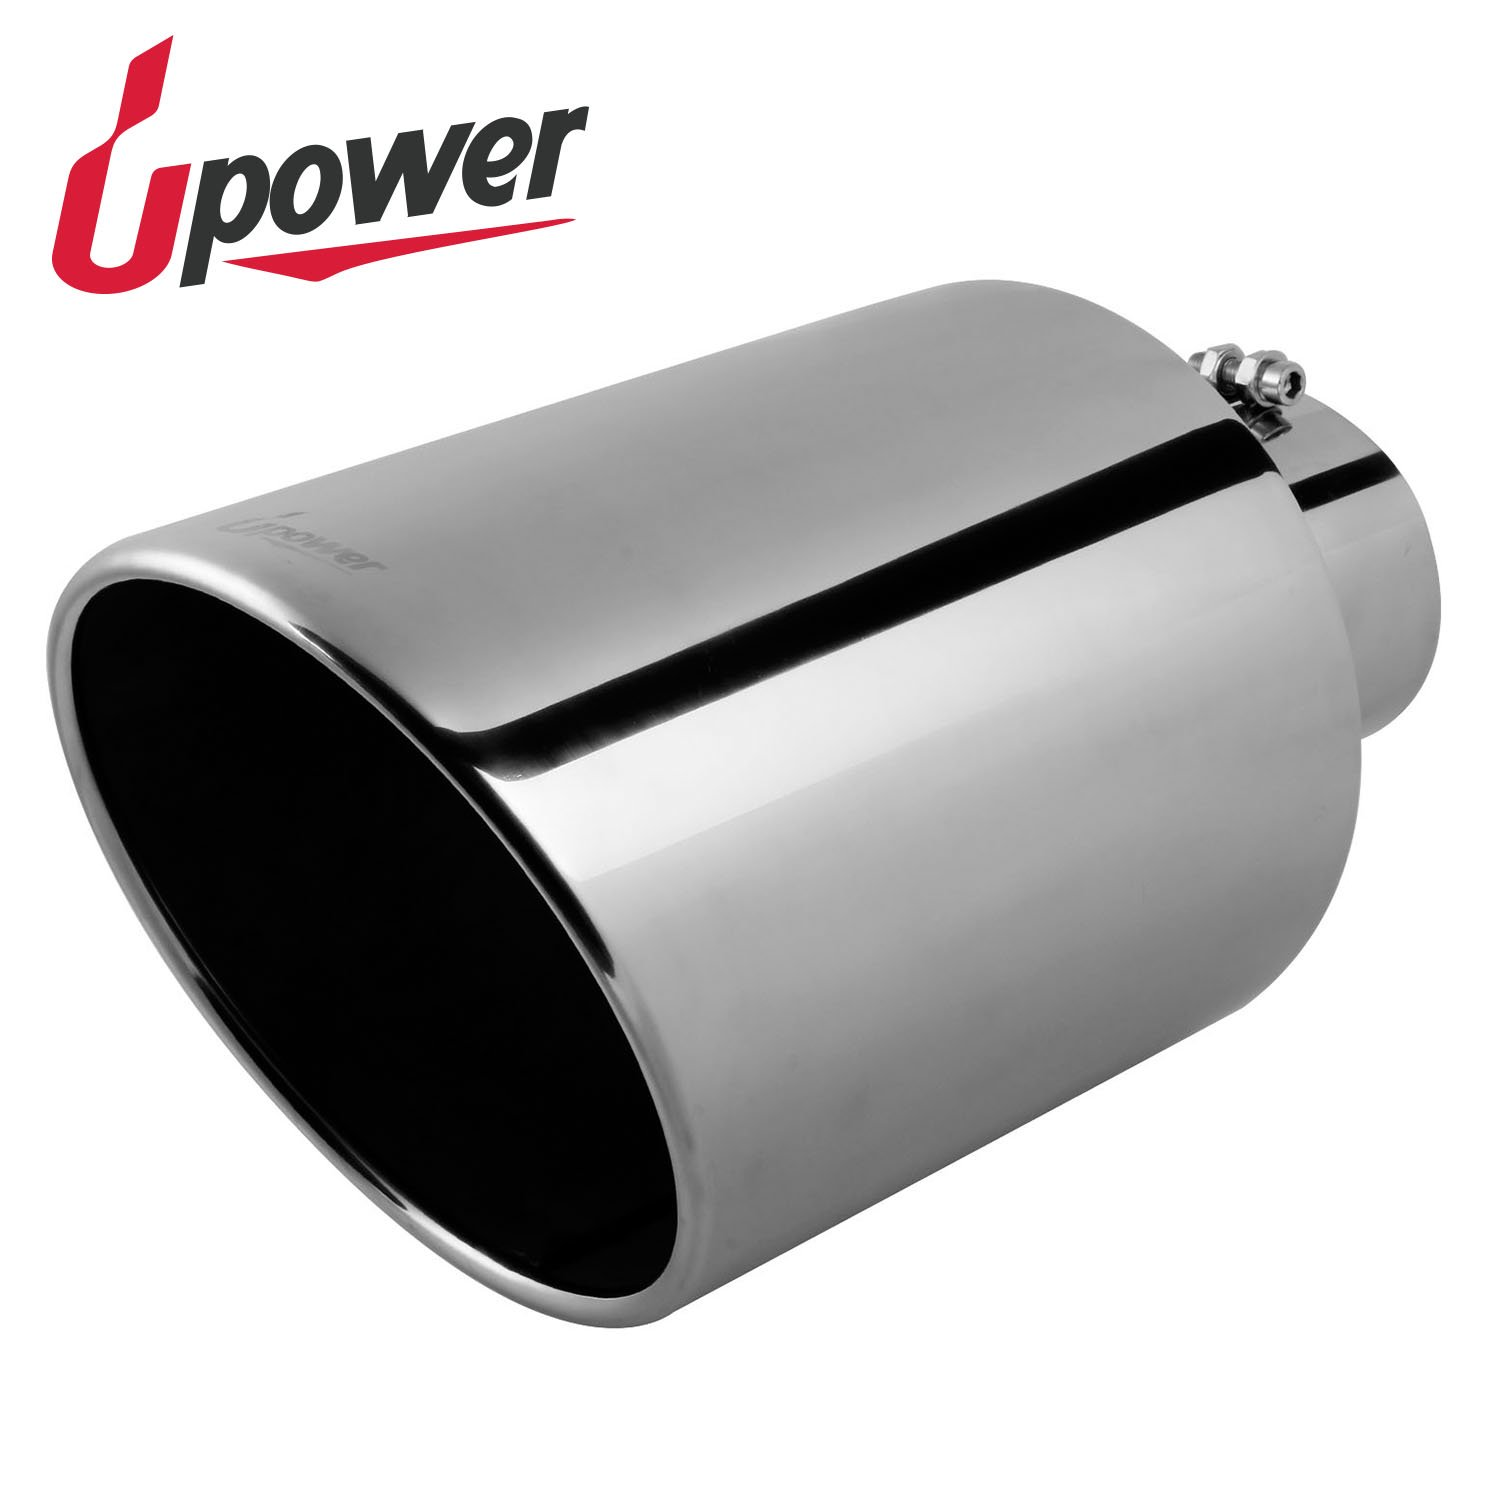 Upower 5 Inch Inlet 10' Outlet Exhaust Tip 18' Long Stainless Steel Bolt-On PartsSquare